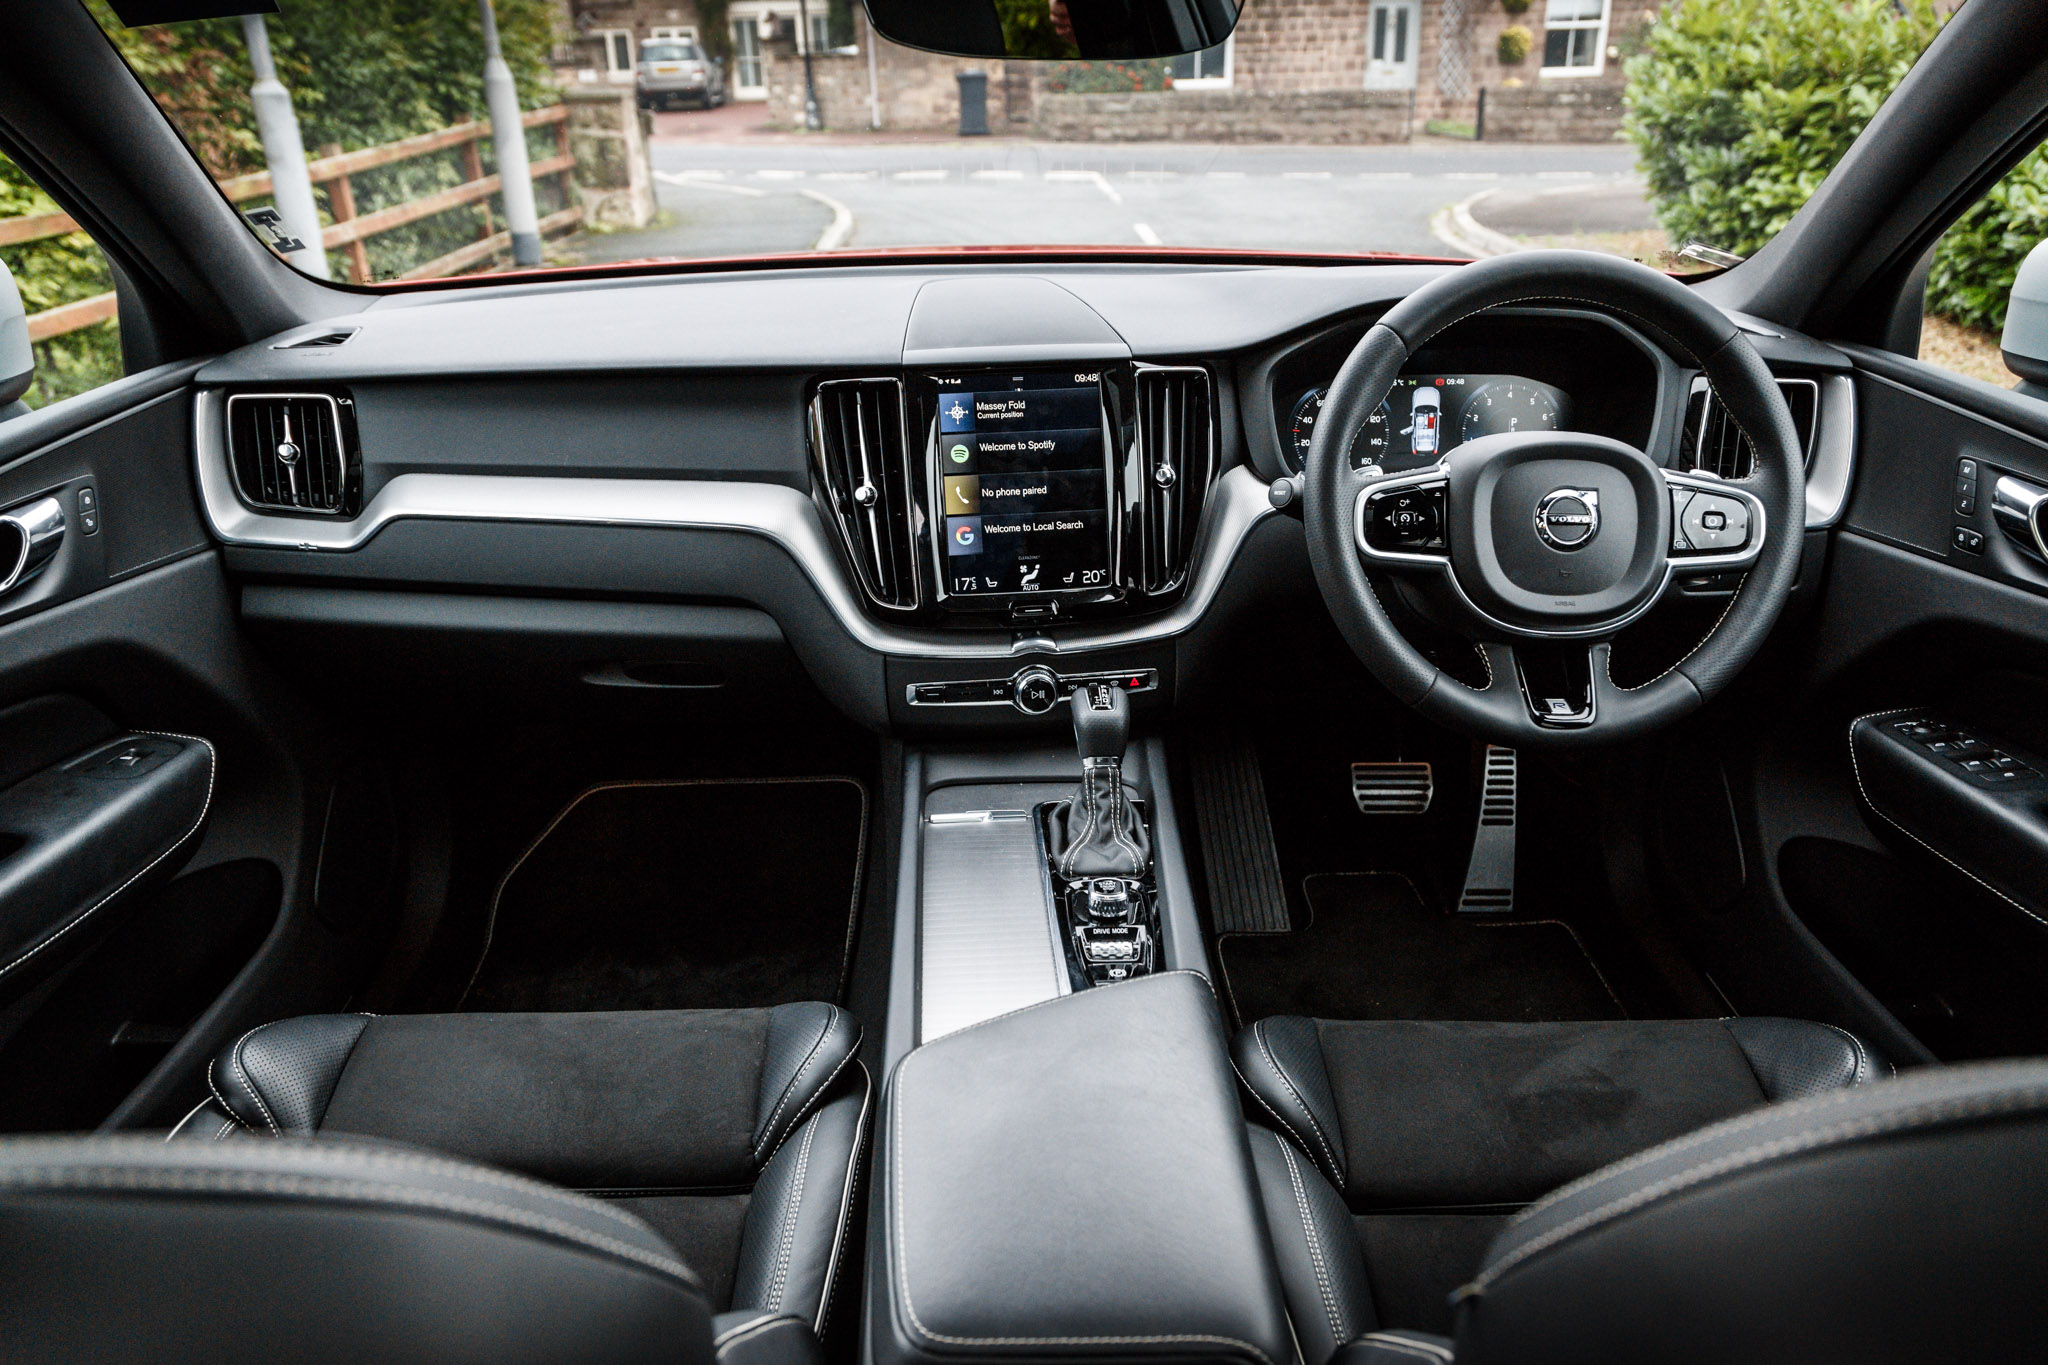 100 Volvo Xc60 Interior 2017 Iab Reader Spots The 2017 Volvo Xc60 Testing In Germany 2017